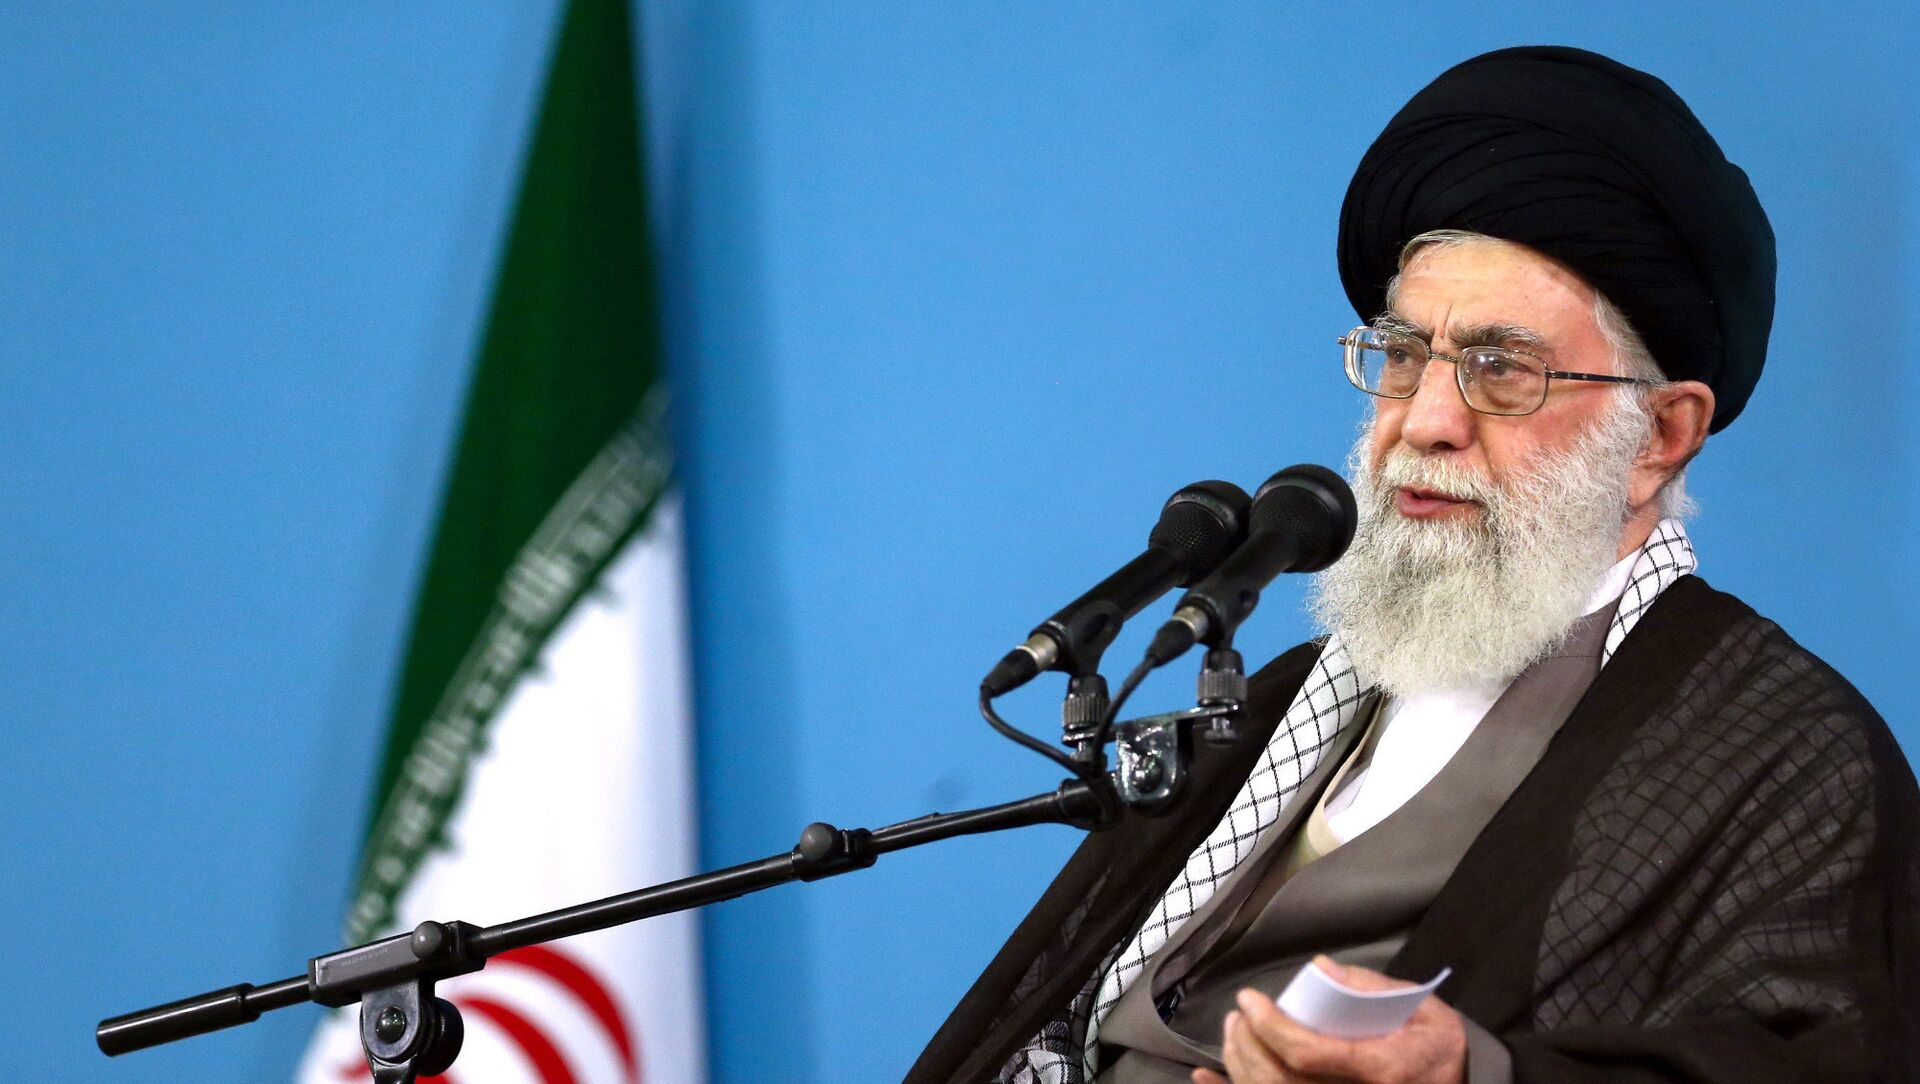 In this picture released by the official website of the office of the Iranian supreme leader, Supreme Leader Ayatollah Ali Khamenei delivers a speech during a meeting in Tehran, Wednesday, Sept. 9, 2015 - Sputnik Italia, 1920, 07.02.2021